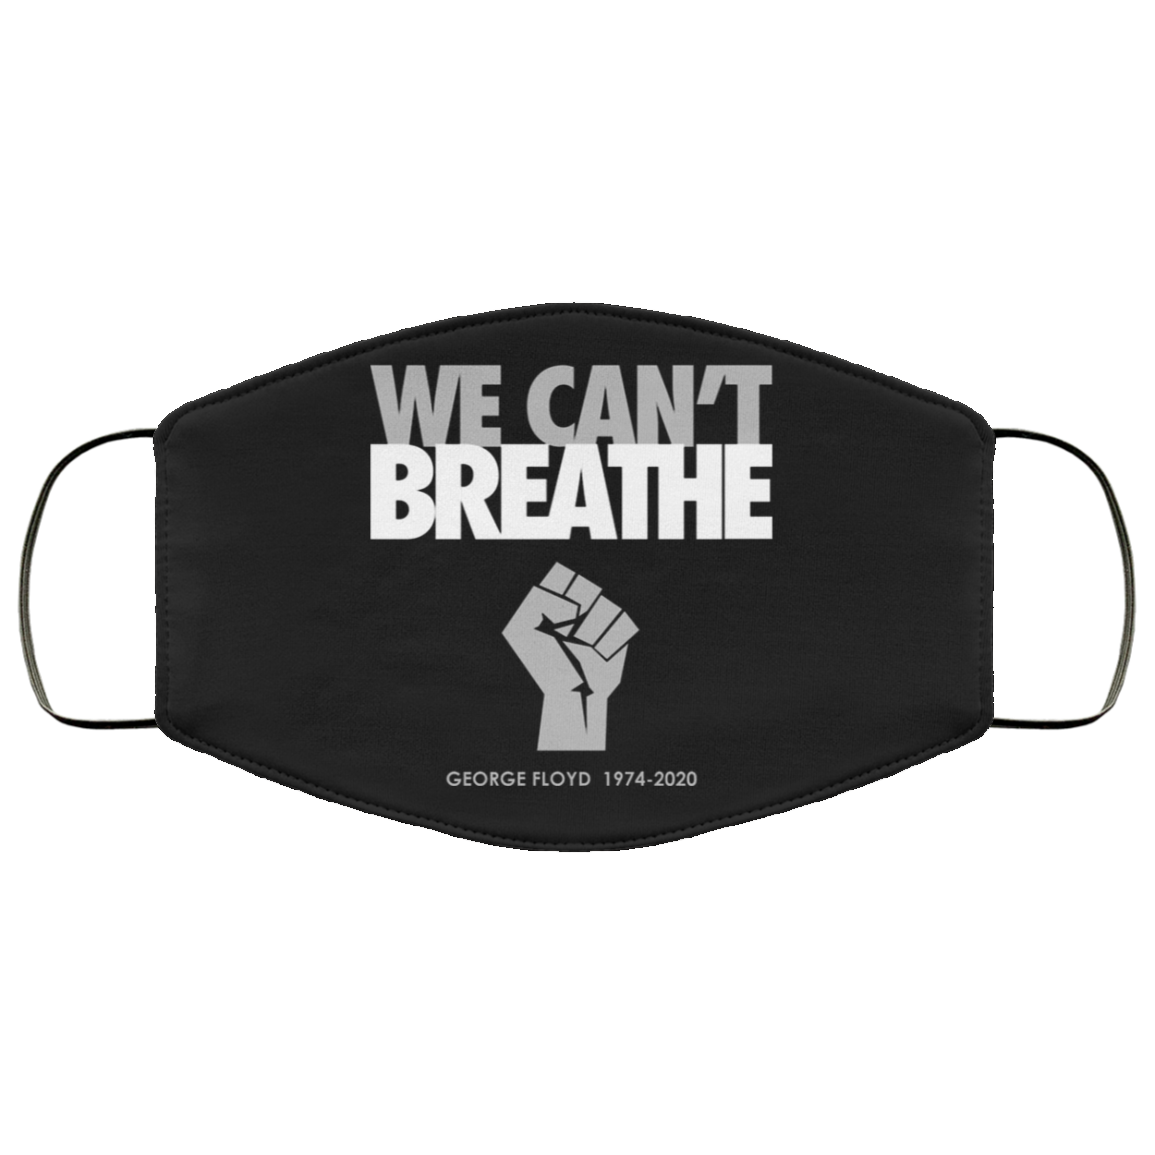 We Can't Breathe Face Masks Justice For George Floyd Face Masks Black Lives Matter Shirt Protest